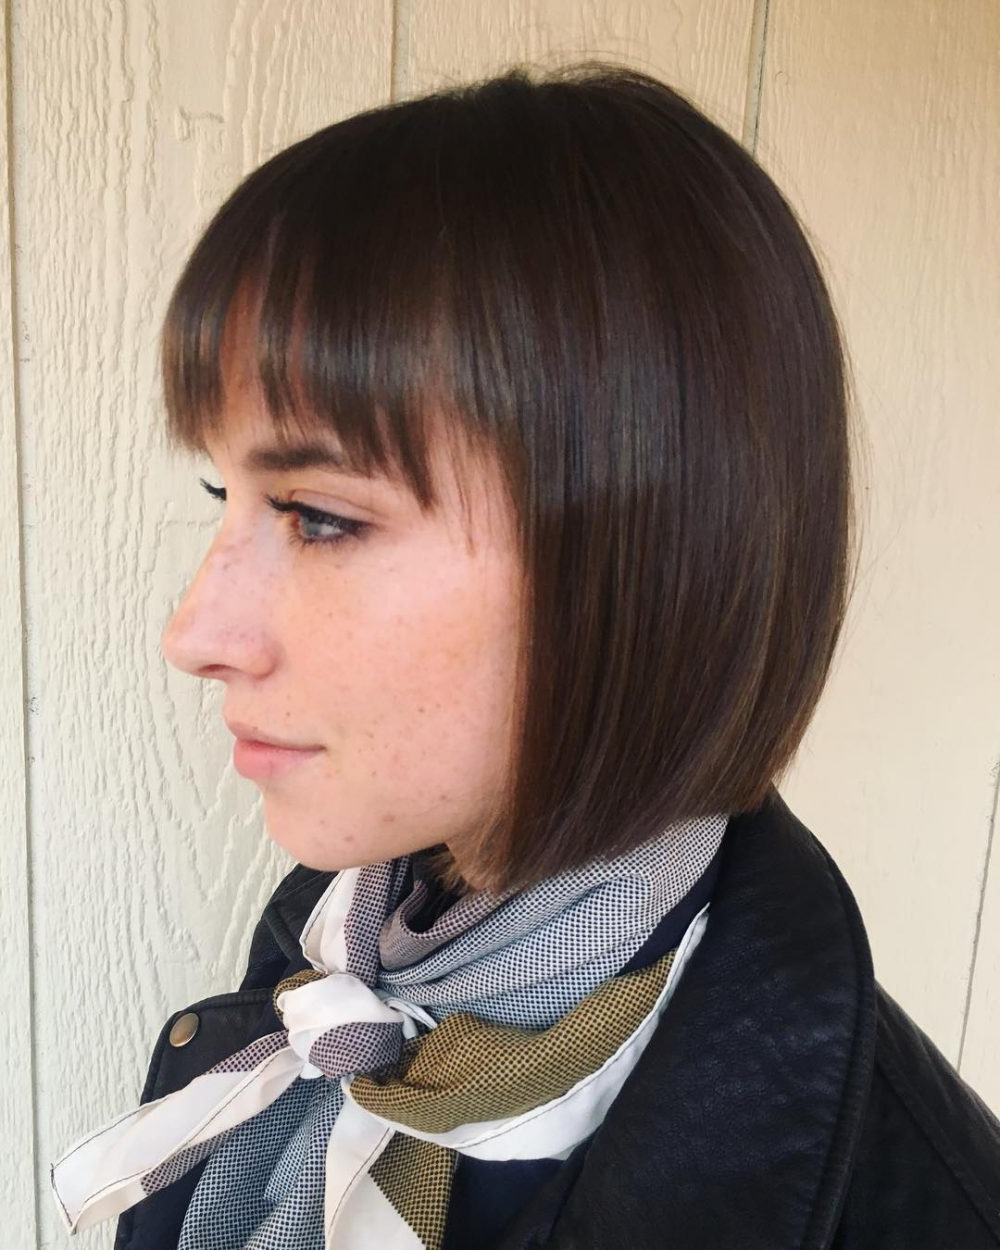 35 Short Straight Hairstyles Trending Right Now (Updated For 2018) Regarding Rebonded Short Hairstyles (View 15 of 25)